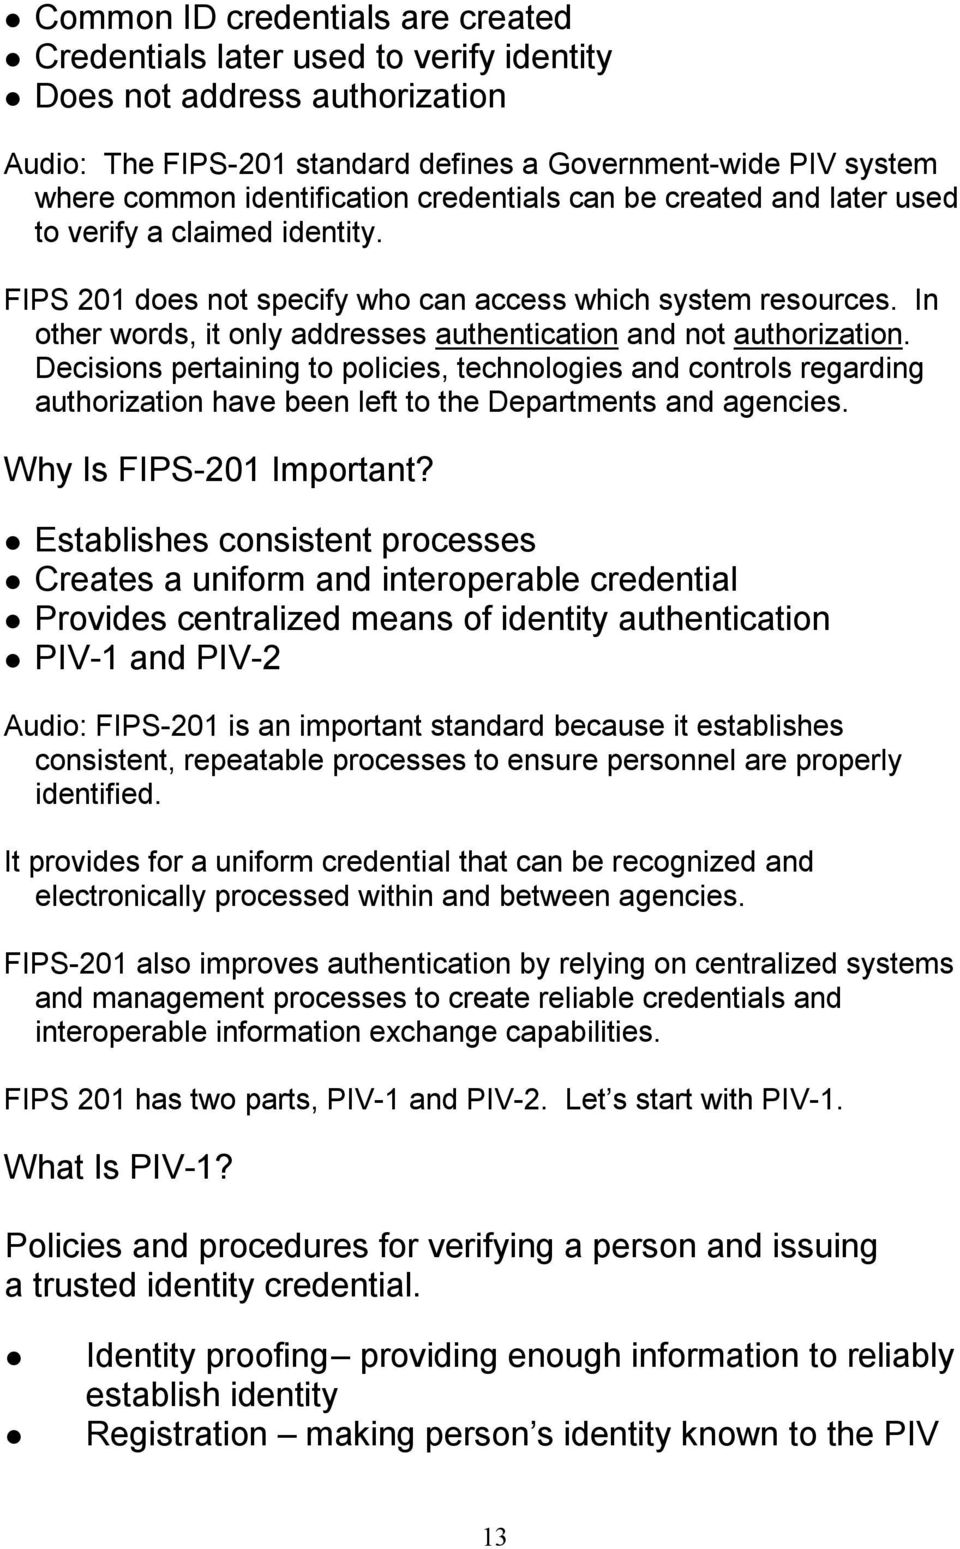 In other words, it only addresses authentication and not authorization.